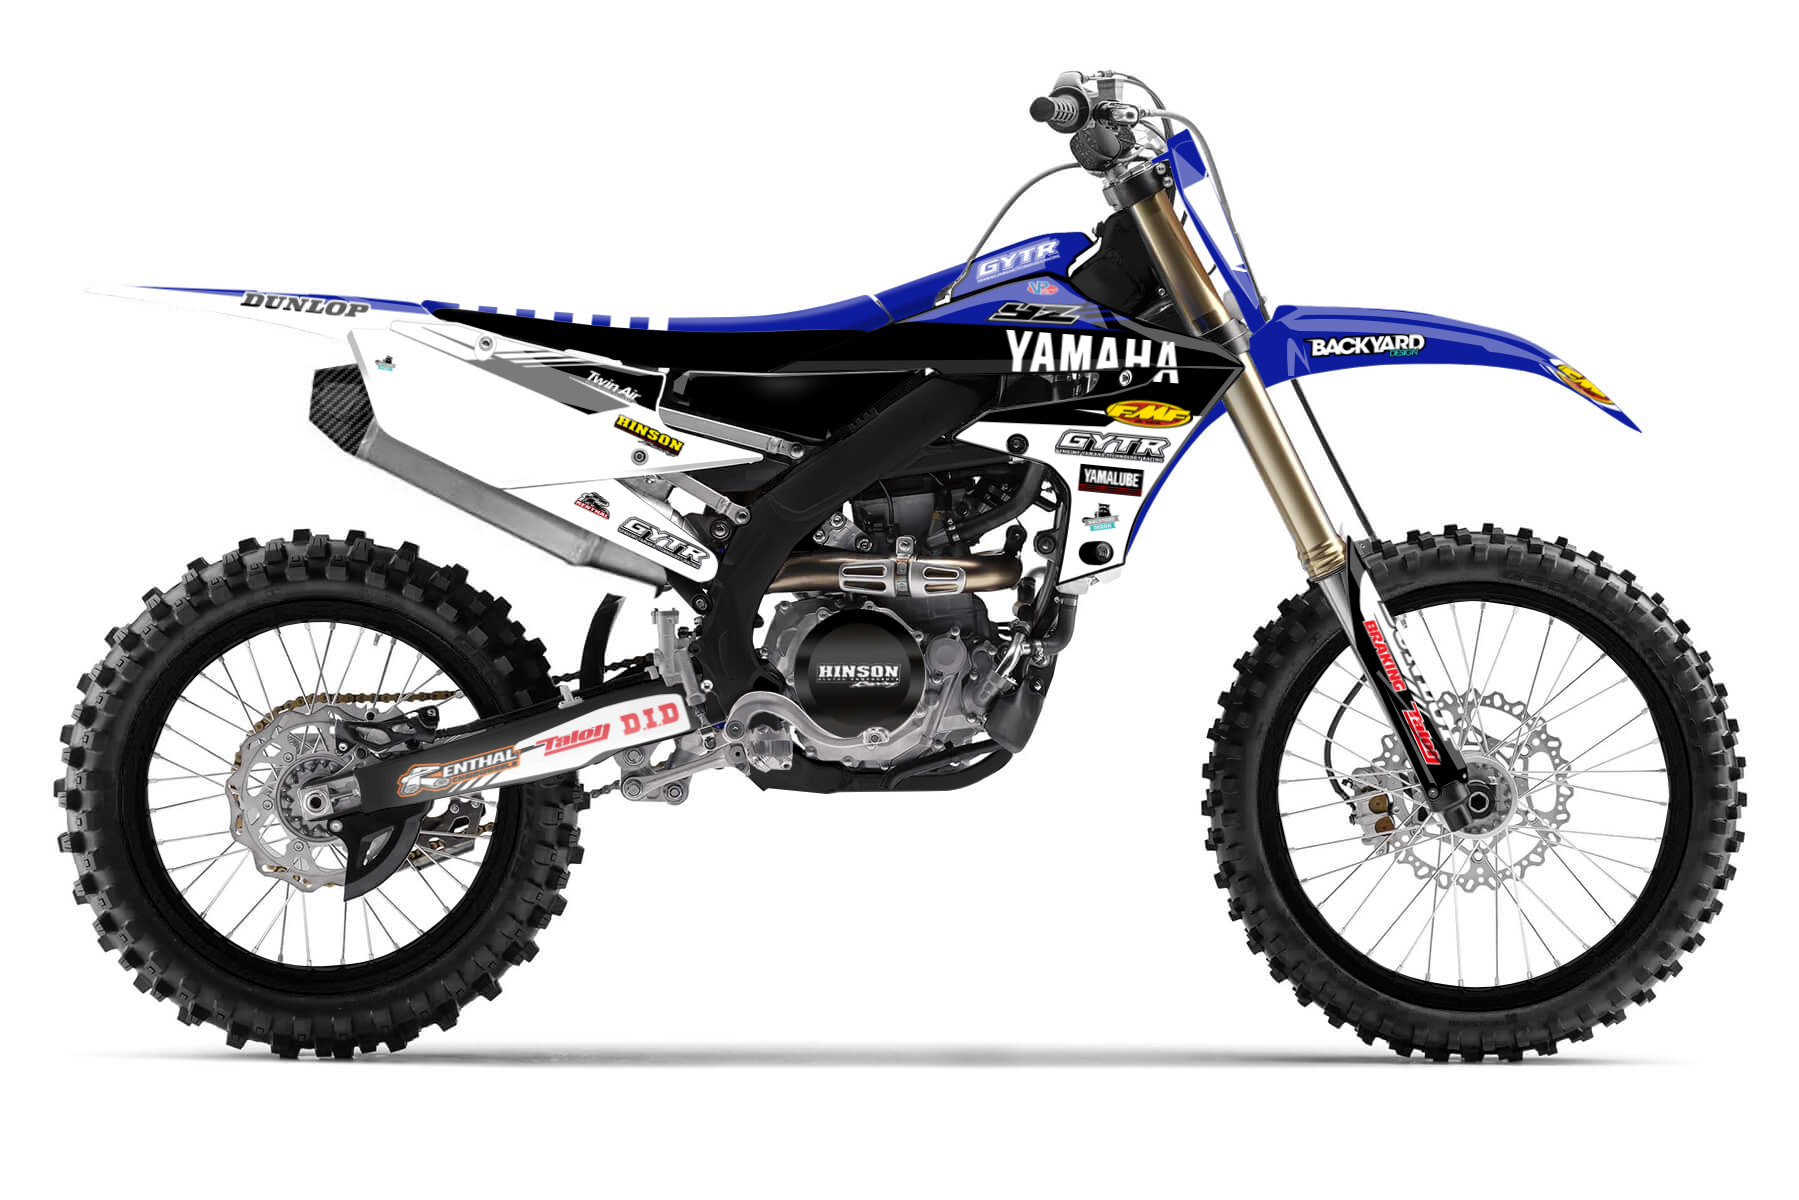 Yamaha YZ250F Graphic Kits  A 250cc engine is the core of the Yamaha YZ250F. This bike won more than a few MX2 Grand Prix. If you want cultivate an aggressive and competitive racing style, then this is your bike